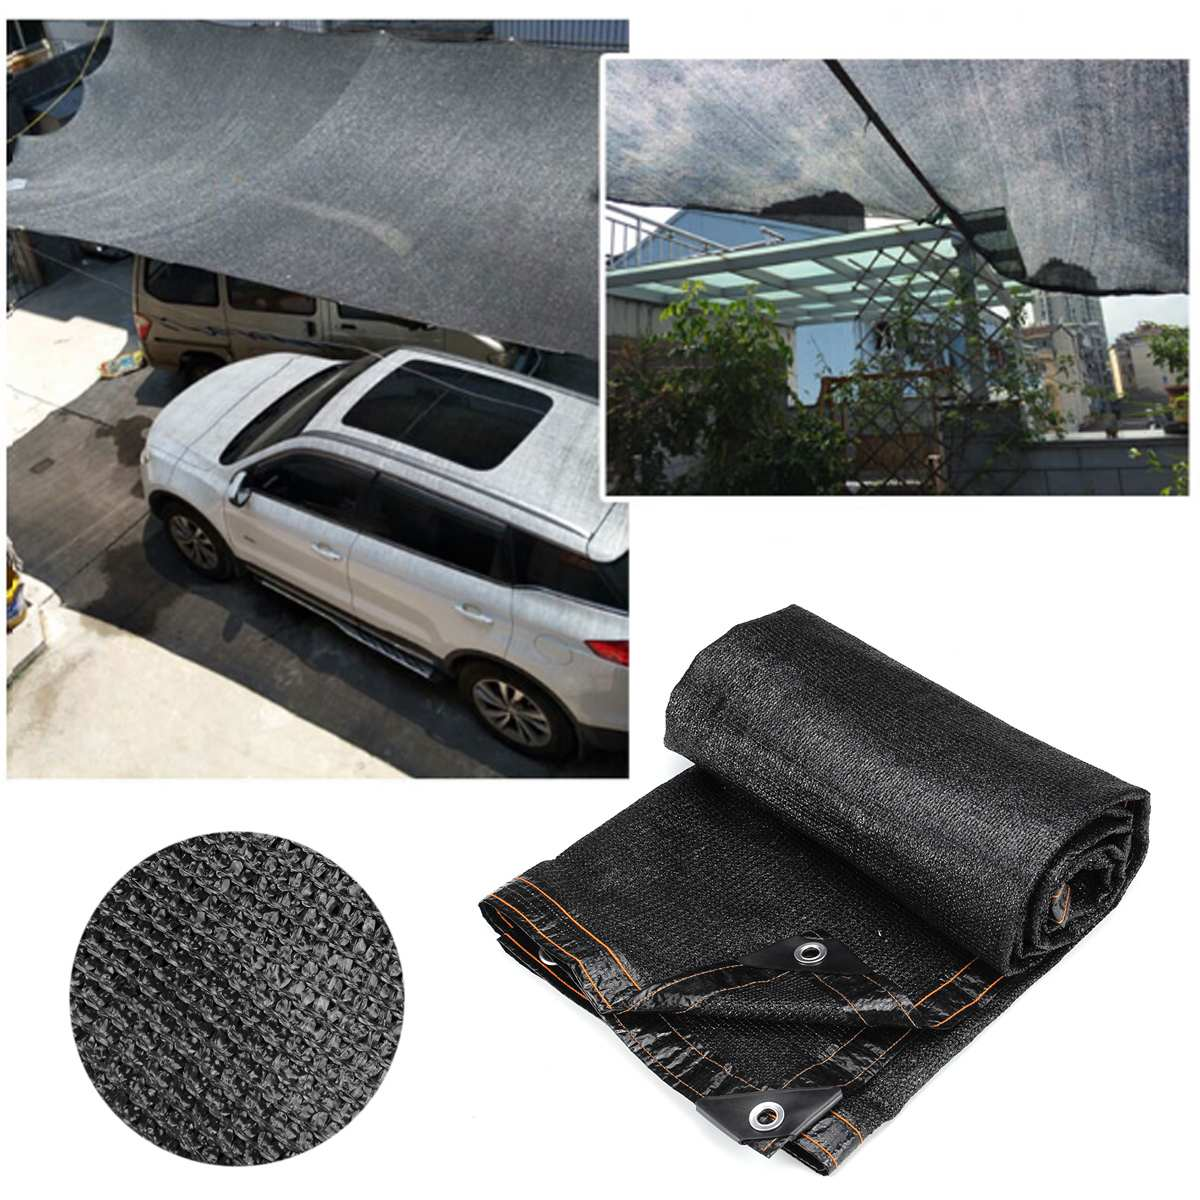 Anti-UV Car Cover Sunshade Net Outdoor Garden Sunscreen Sunblock Shade Cloth Net Plant Greenhouse Cover 80% Shading Rate